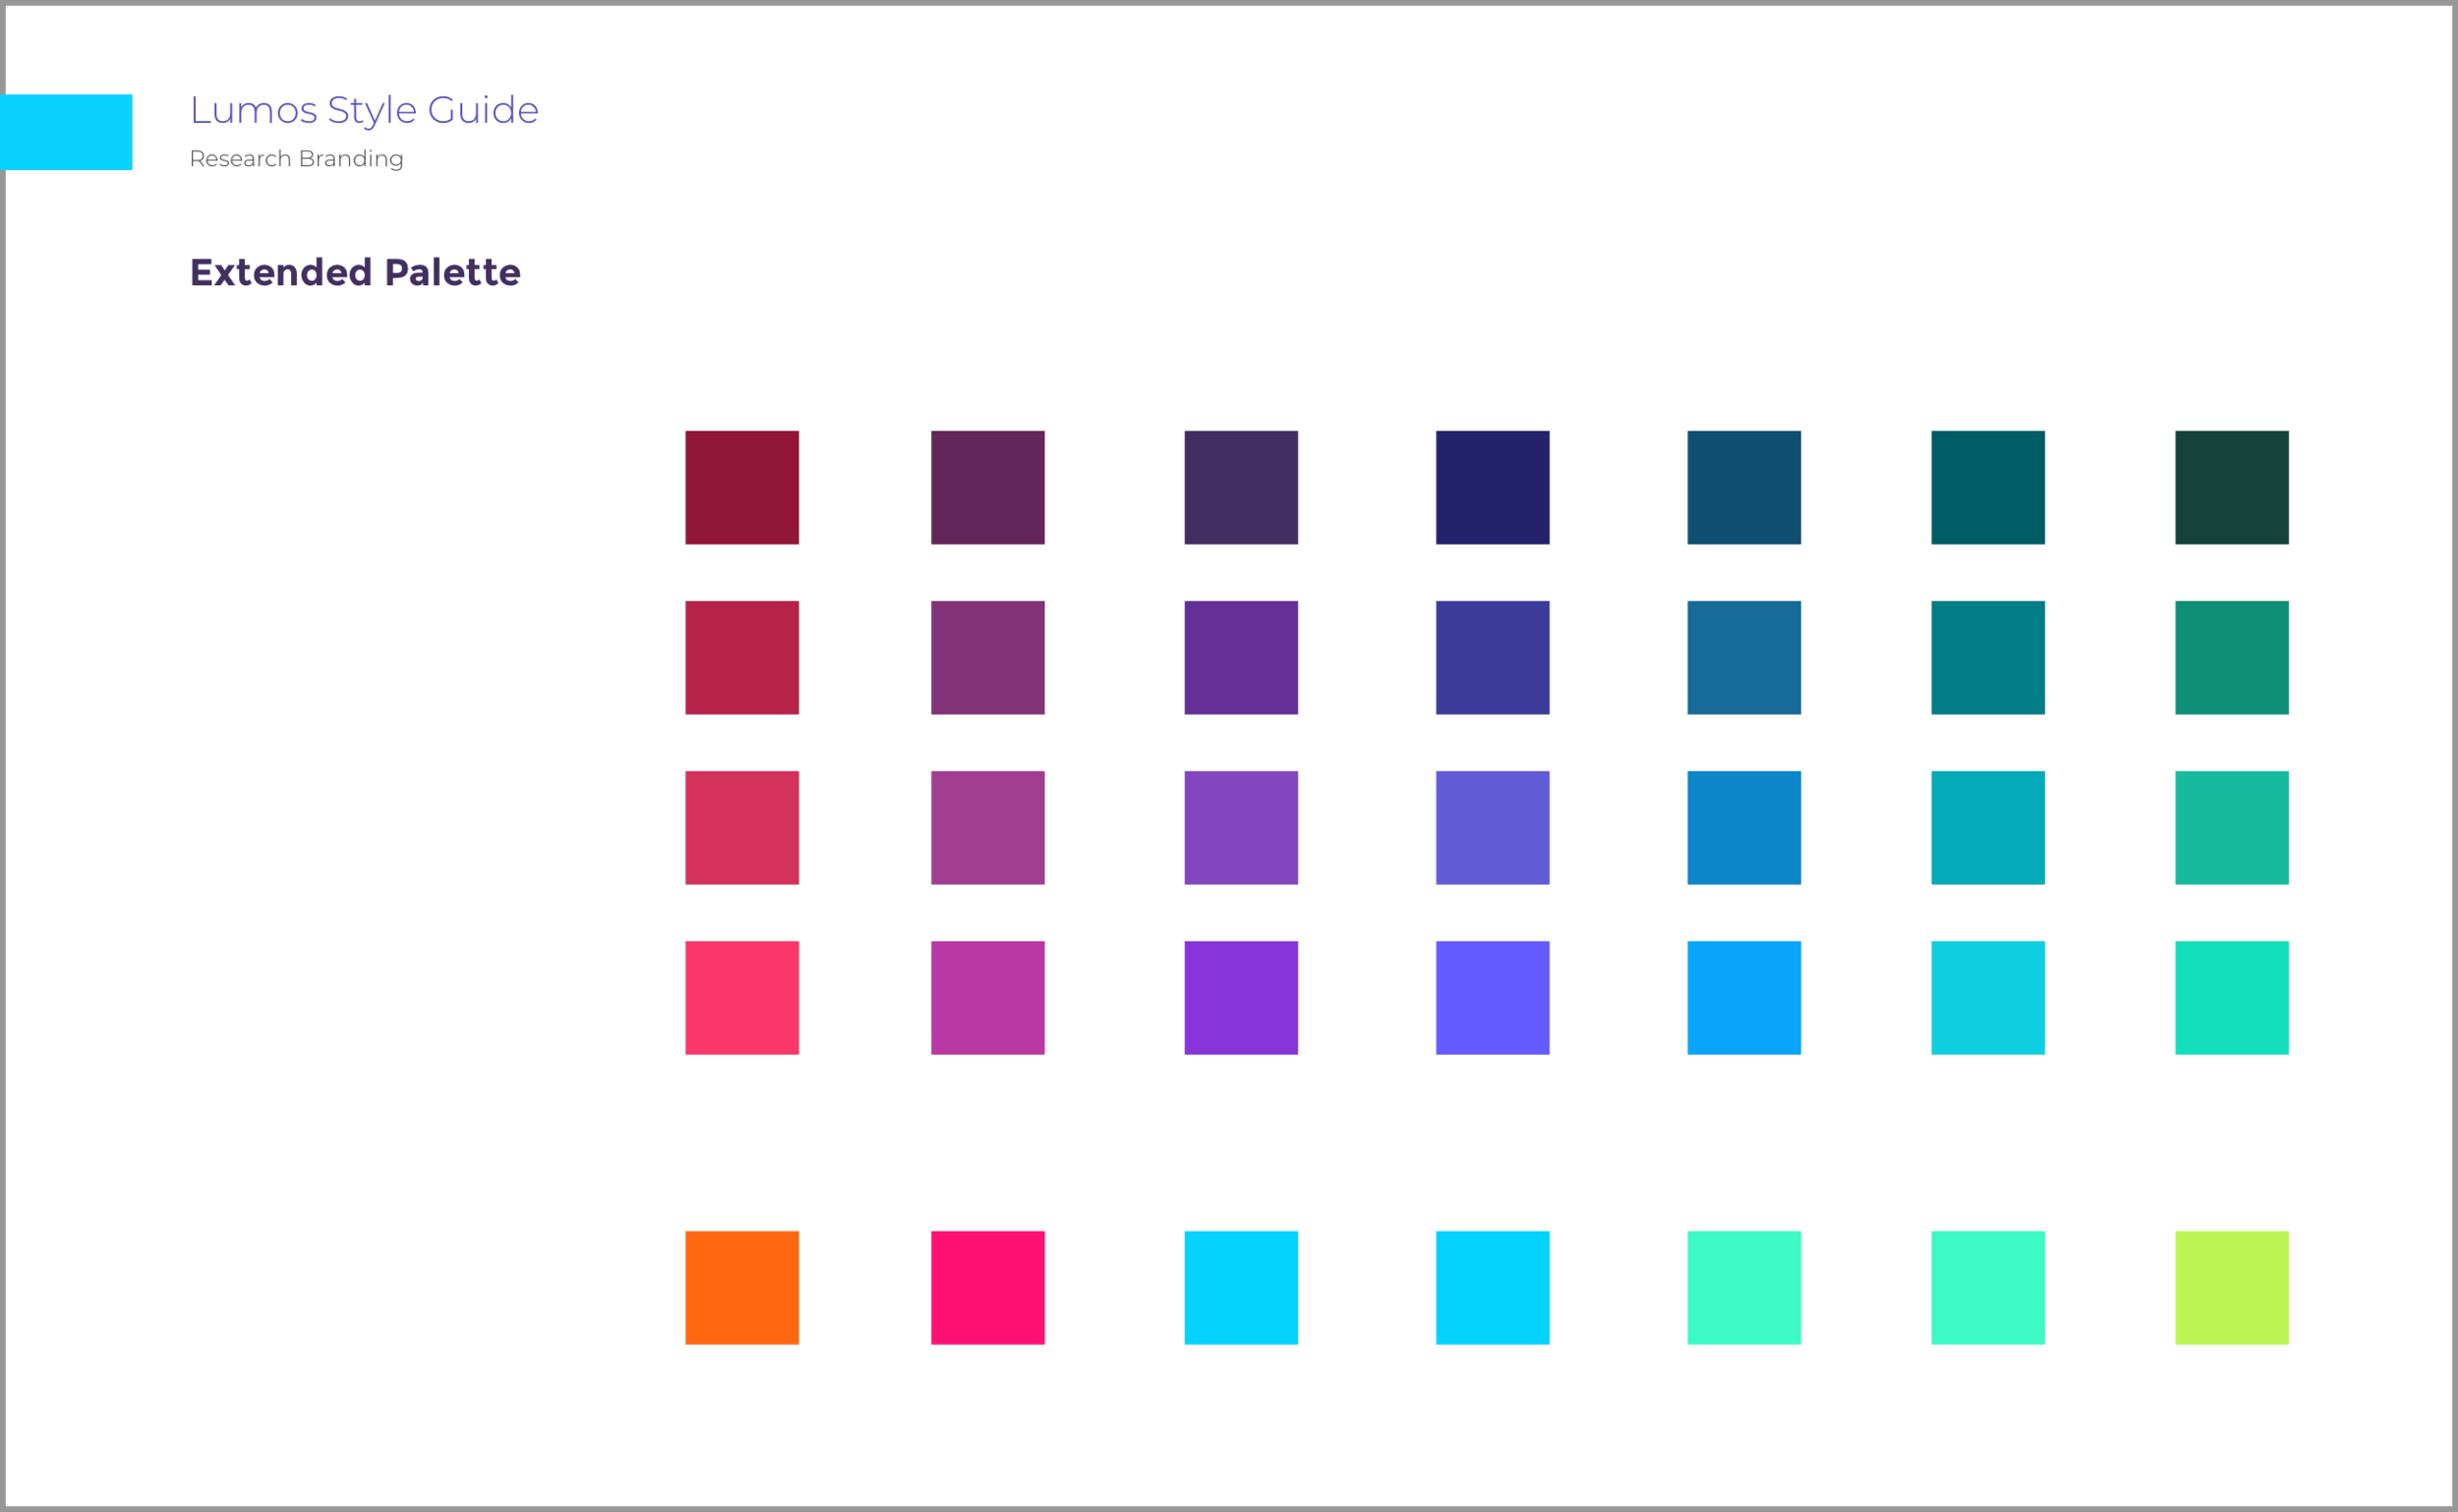 5. extended palette.png